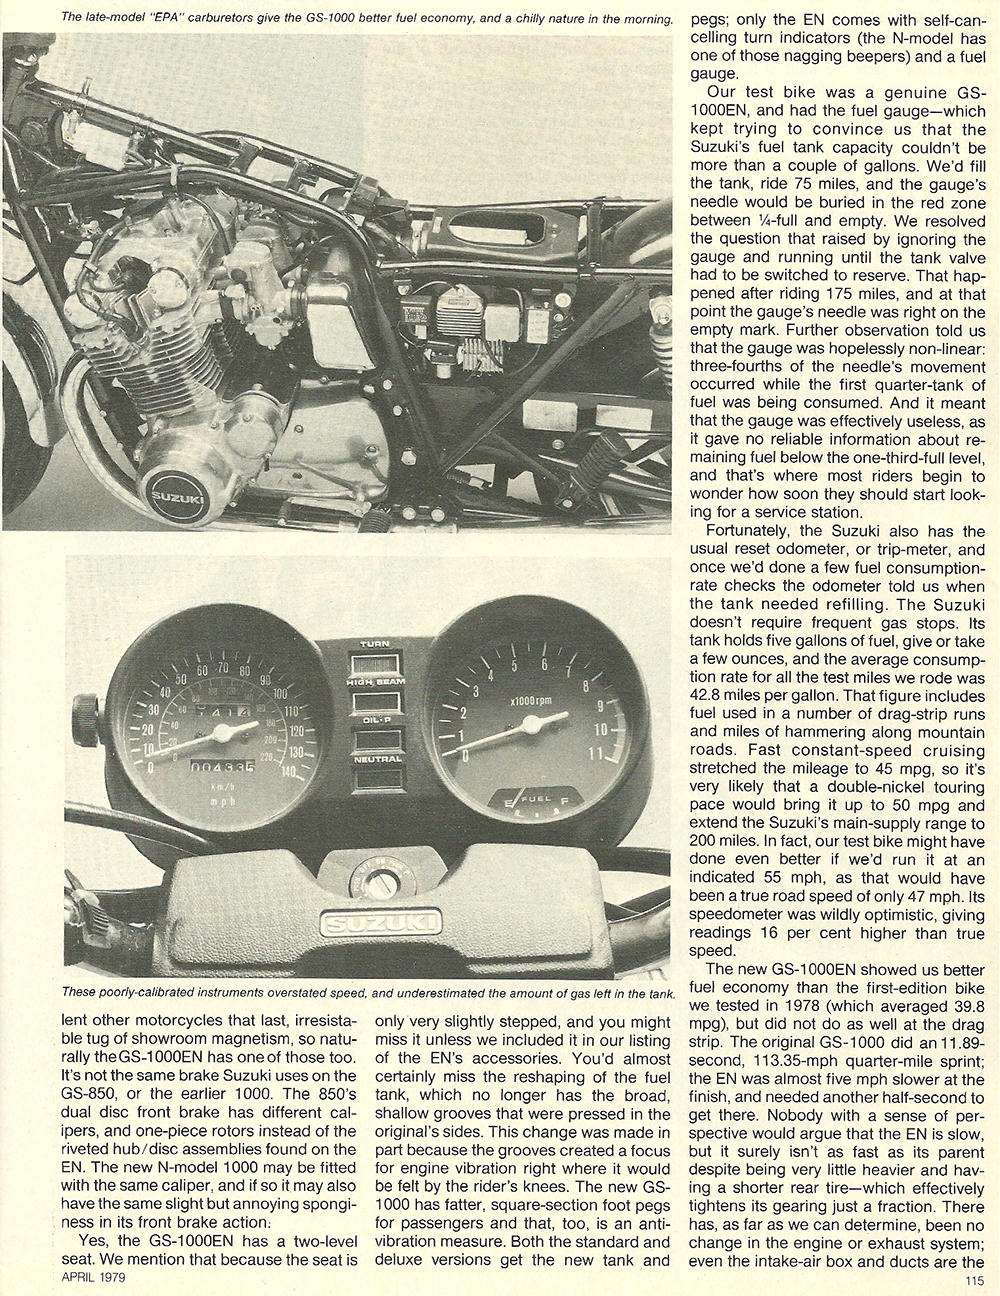 1979 Suzuki GS1000E road test 04.jpg